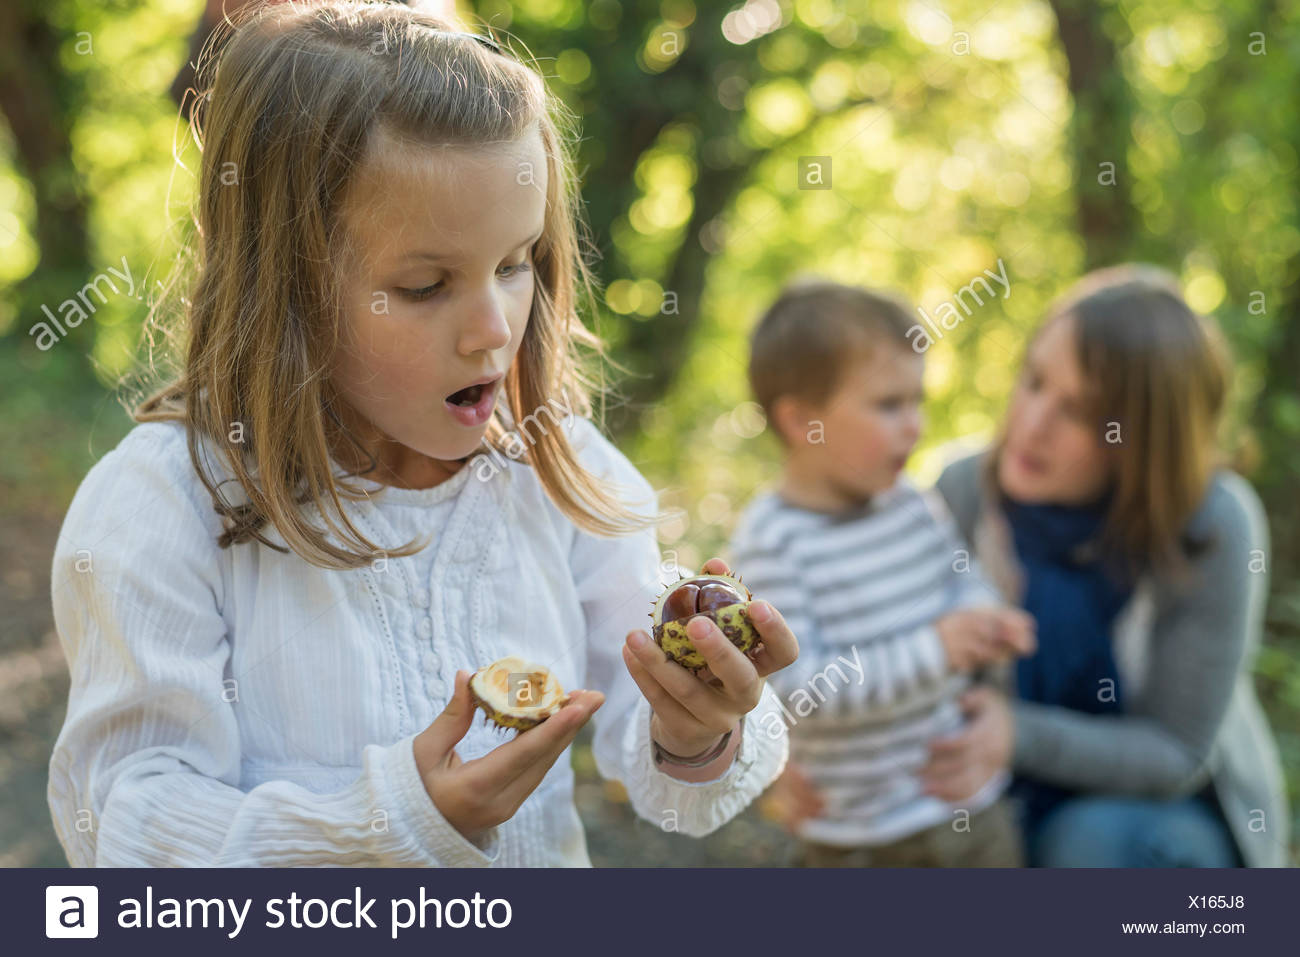 Astonished girl looking at chestnut in her hand - Stock Image